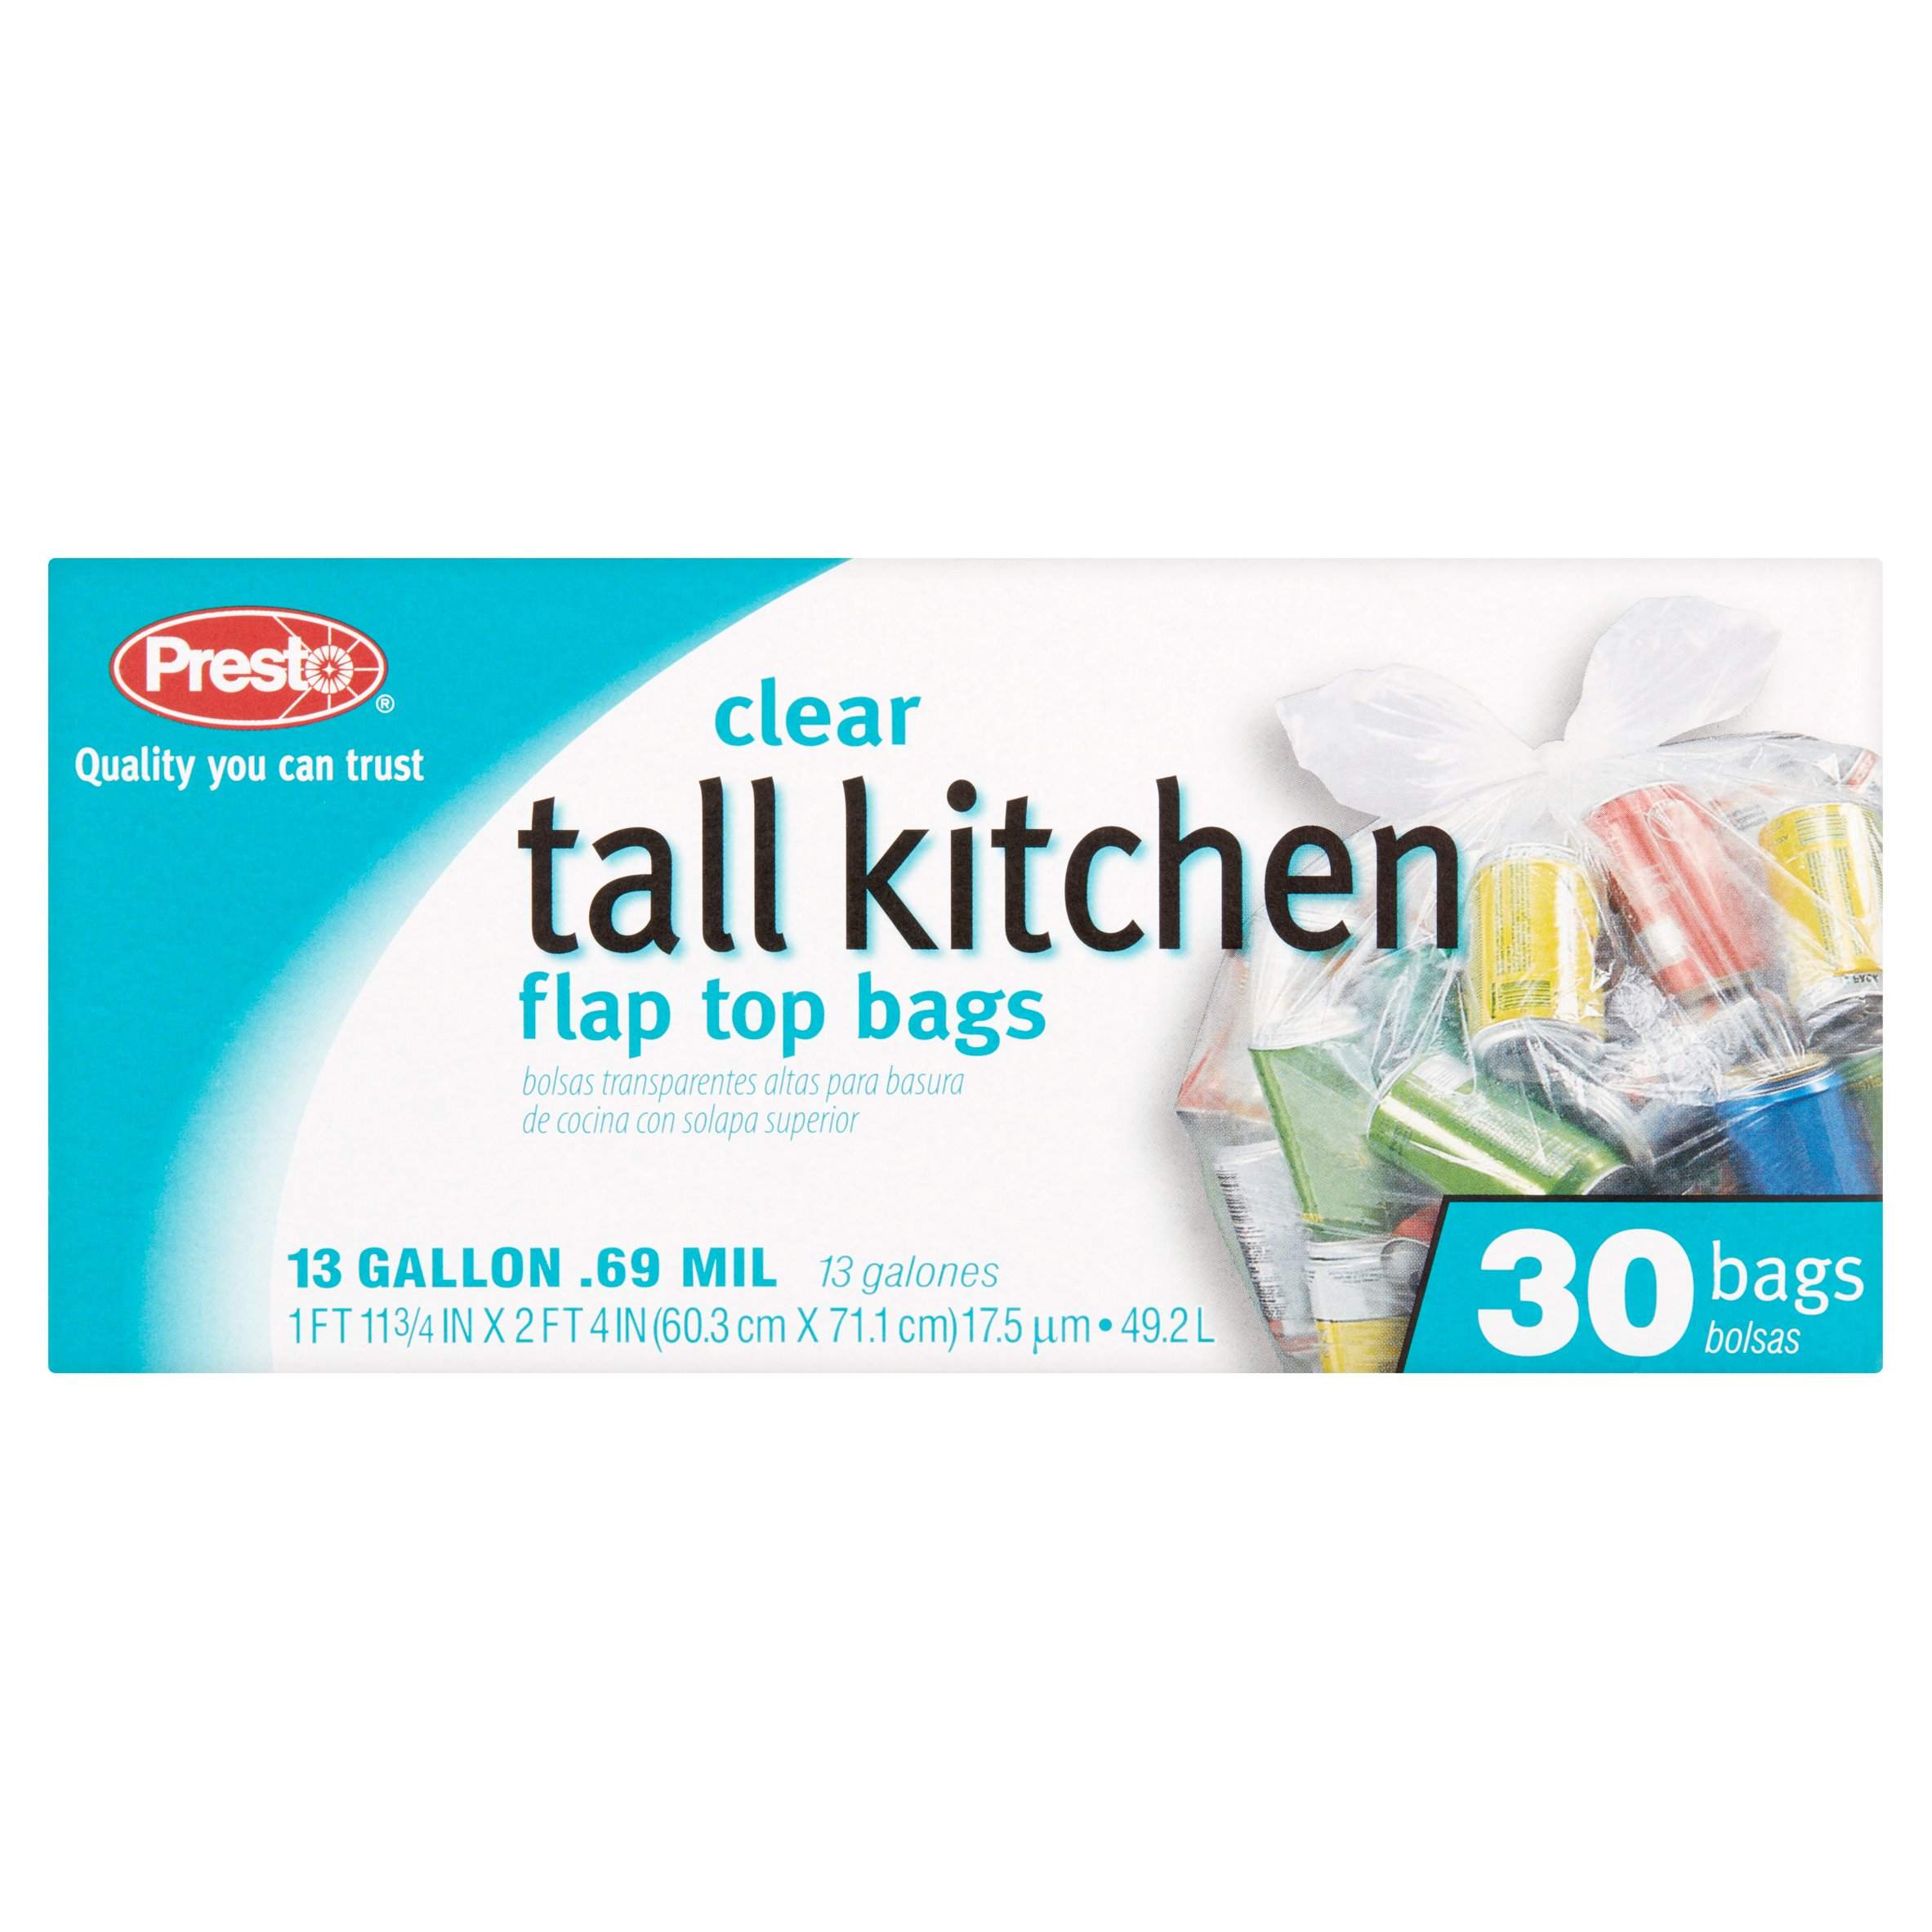 Presto 13 Gallon Clear Tall Kitchen Flap Top Bags, 30 count